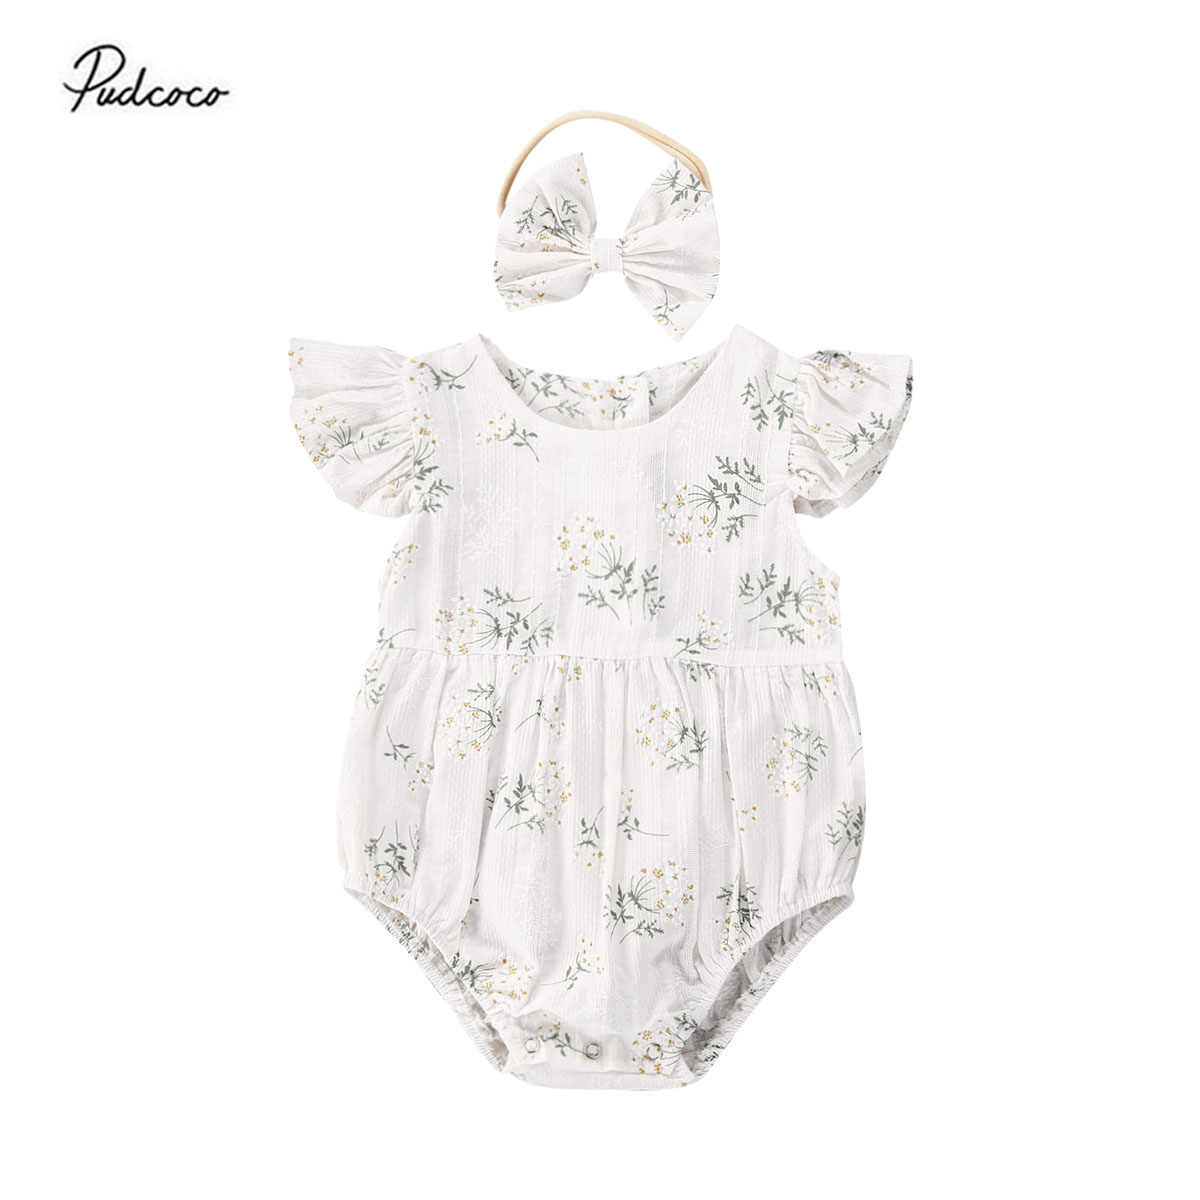 2PCS Toddler Kids Baby Girl Clothes Floral Jumpsuit Summer Sleeveless Bodysuit Sunsuit Outfits Headband